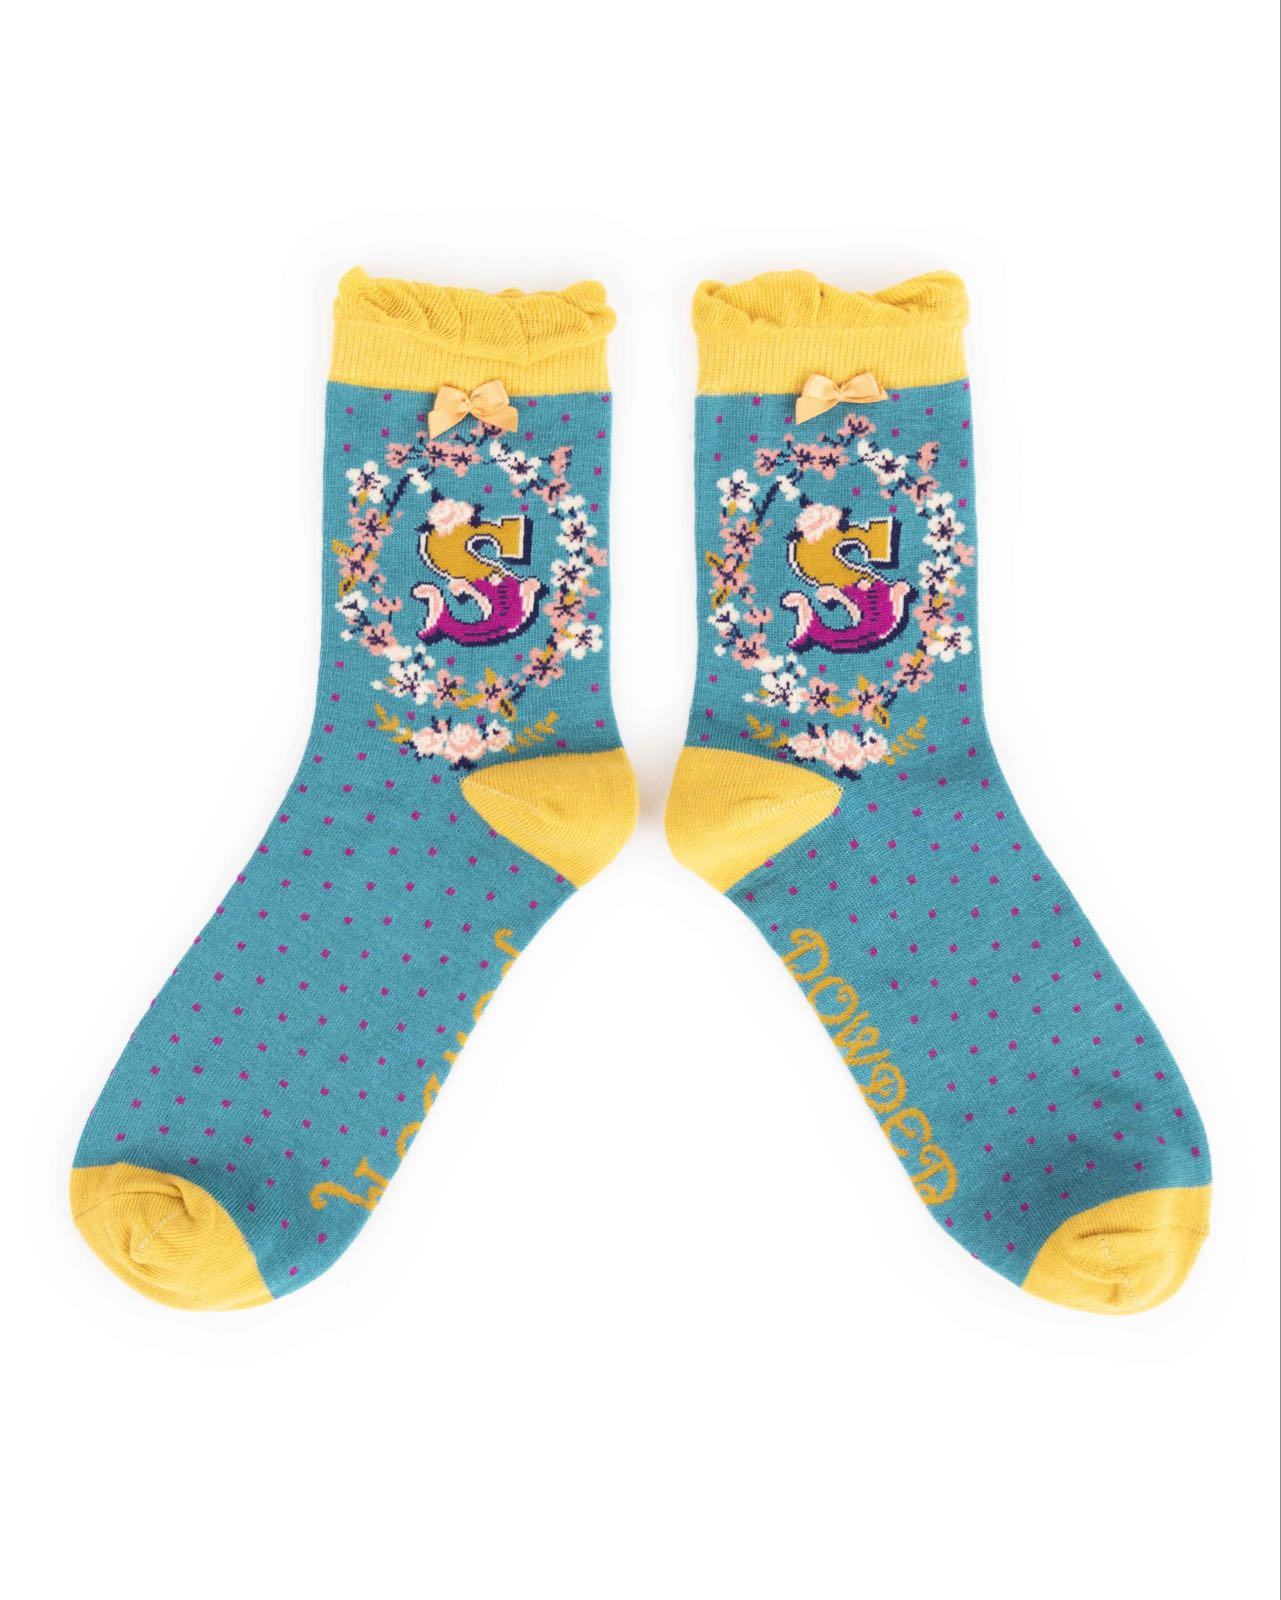 Powder Alphabet socks S (product may differ from item shown in the photo) 4-6 ladies